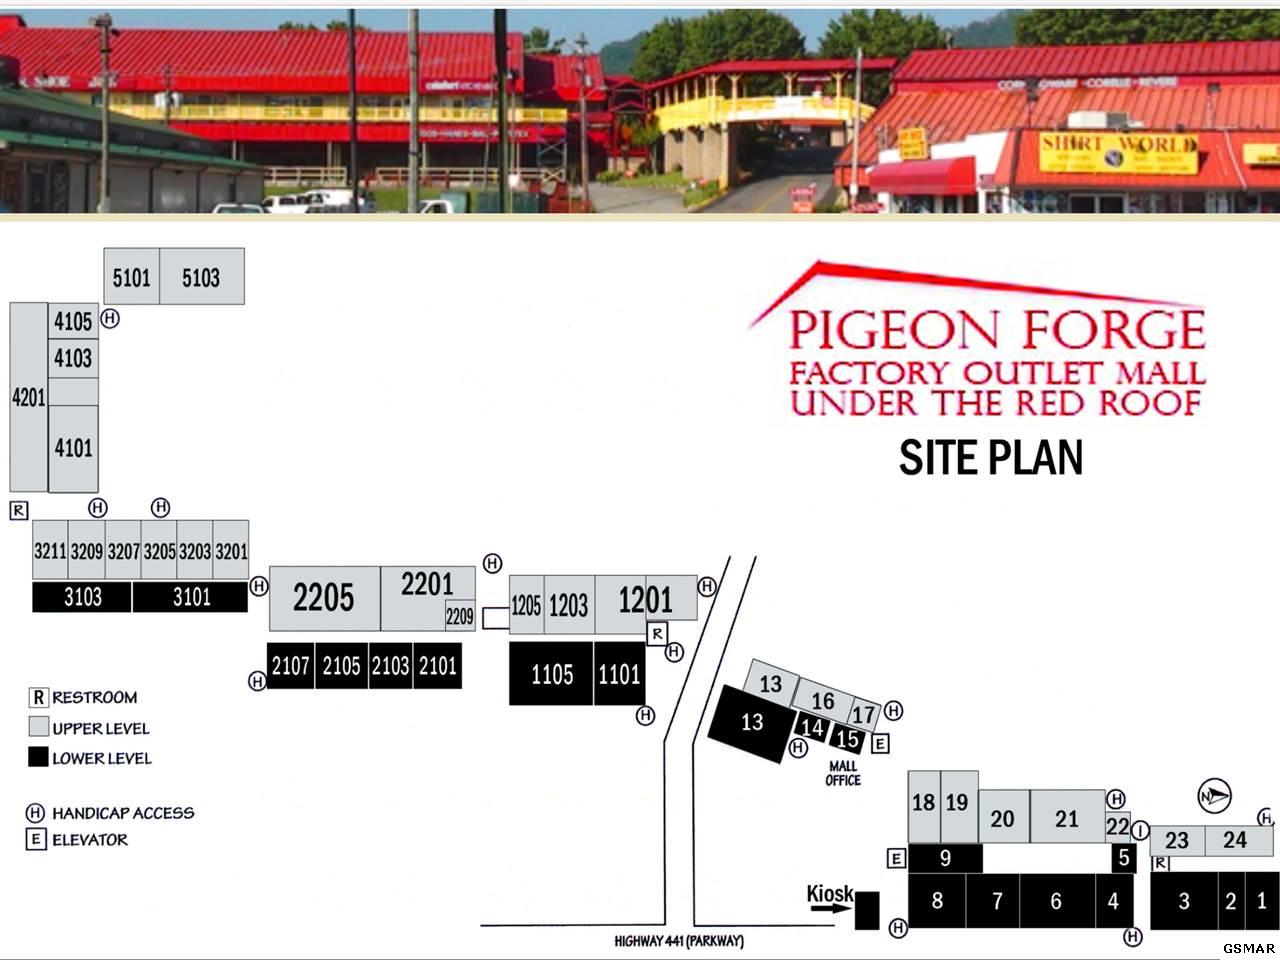 2860 Parkway, Pigeon Forge, TN 37863